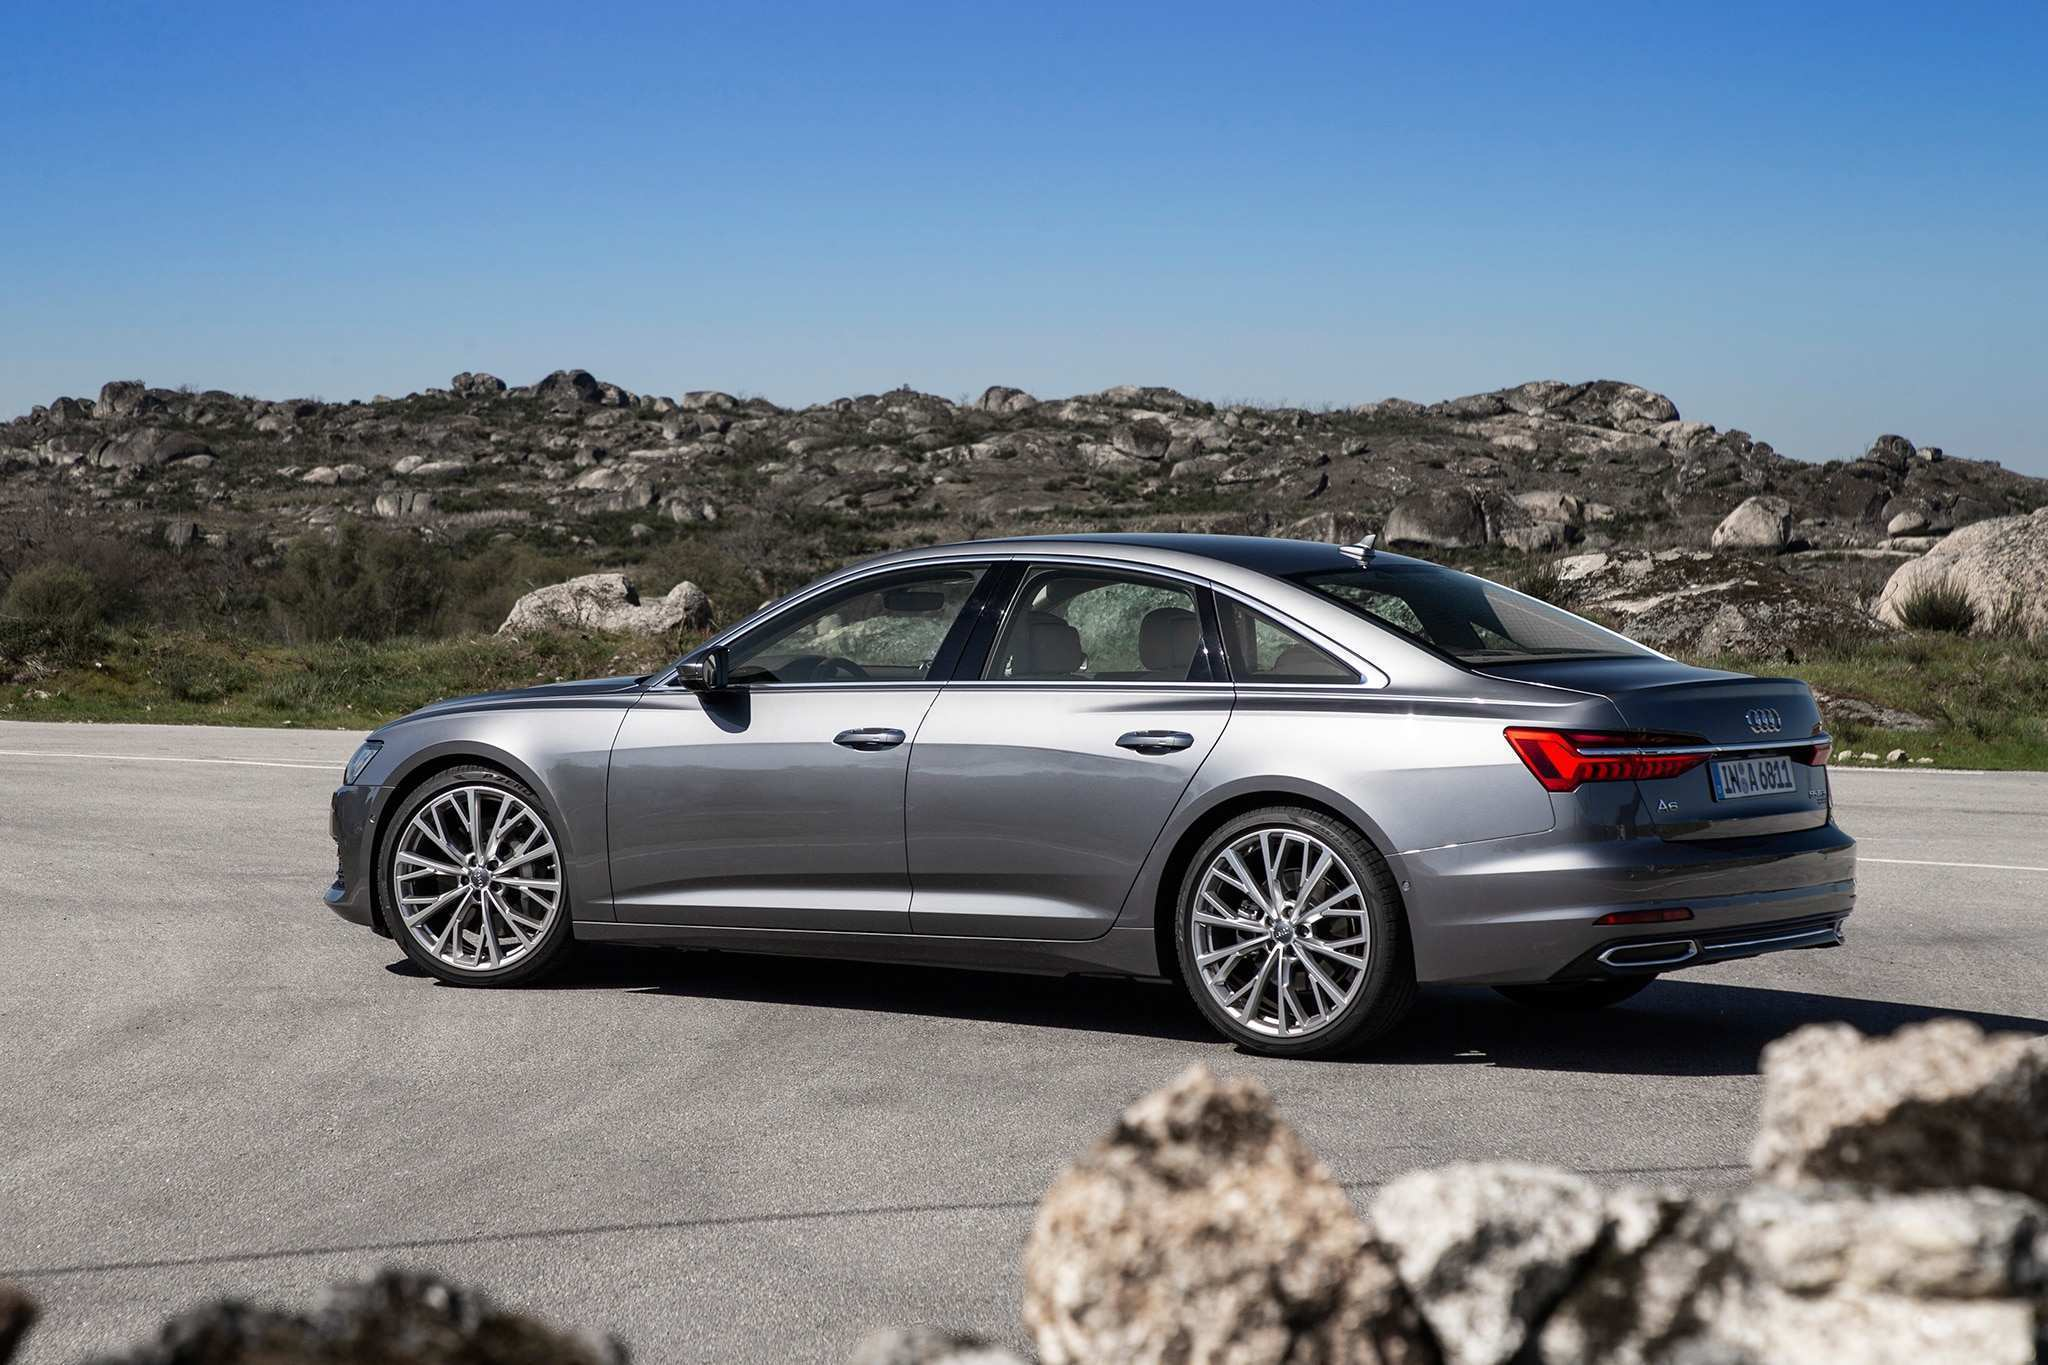 22 New 2019 Audi A6 Msrp Specs for 2019 Audi A6 Msrp